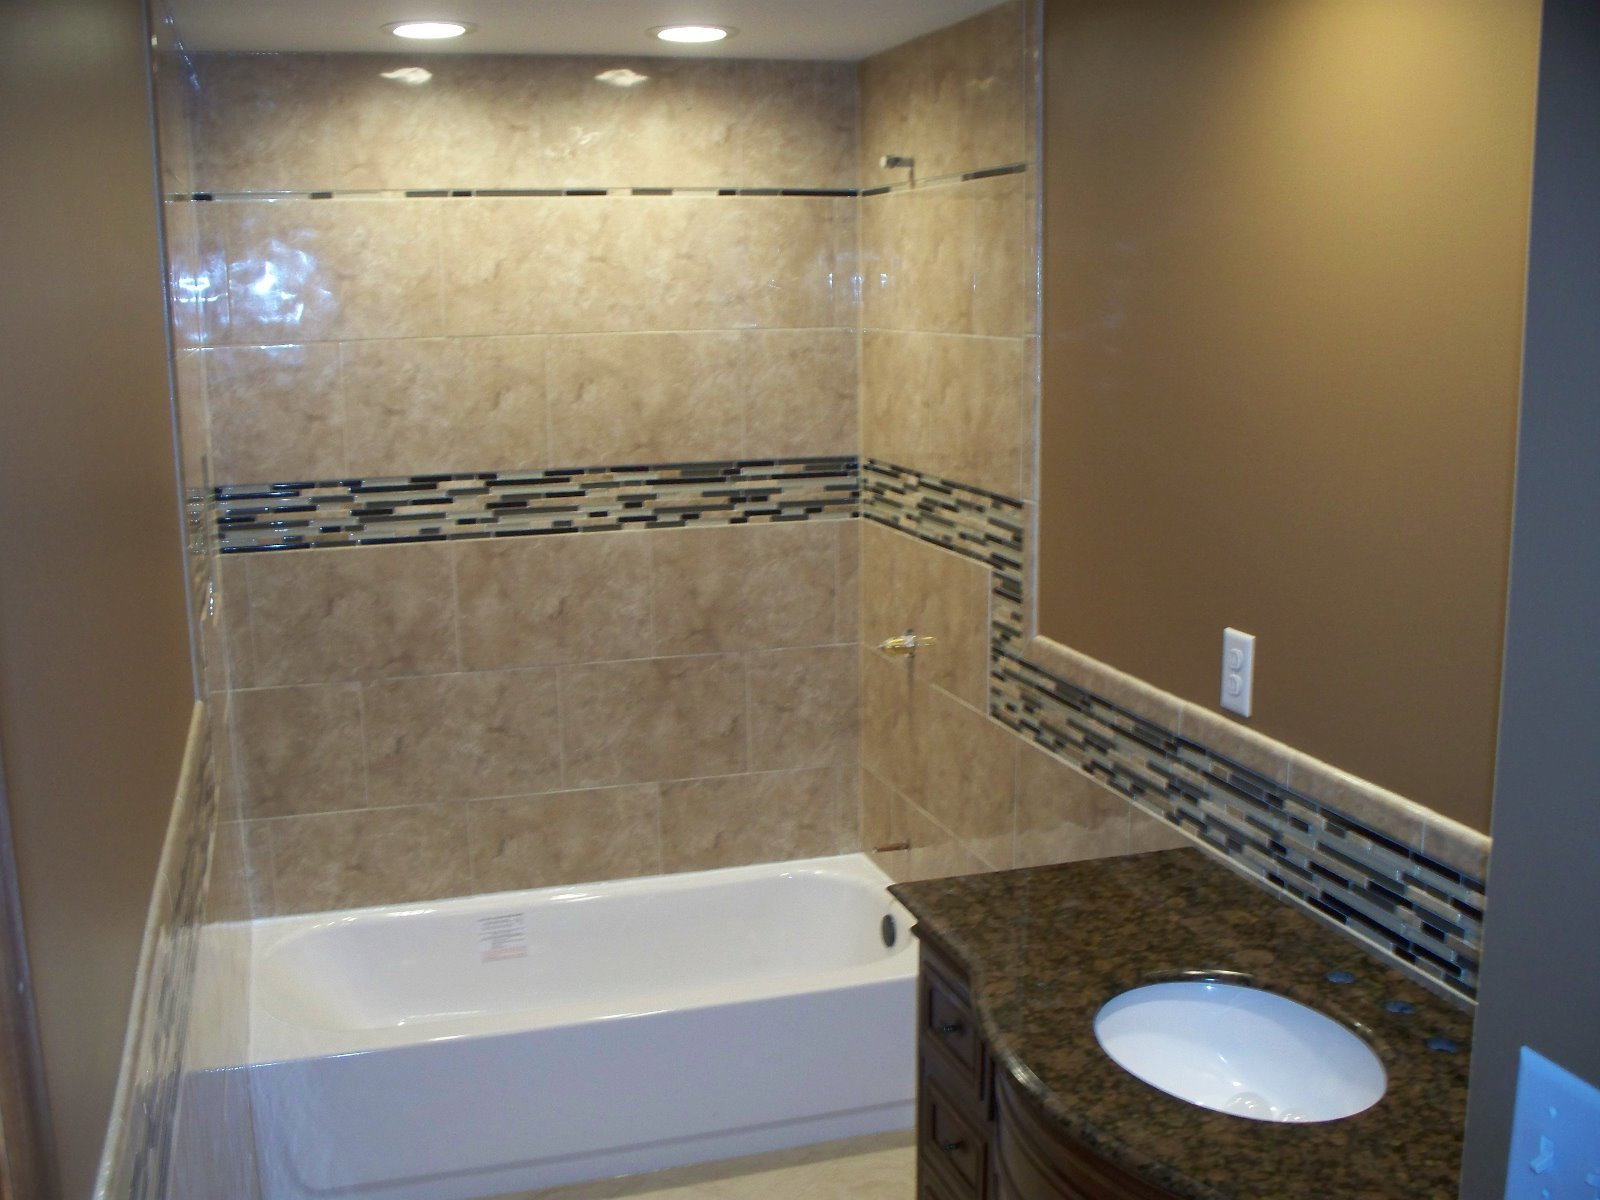 contractors remodeling washington remodel strategies for biederman park real featured smart bathroom